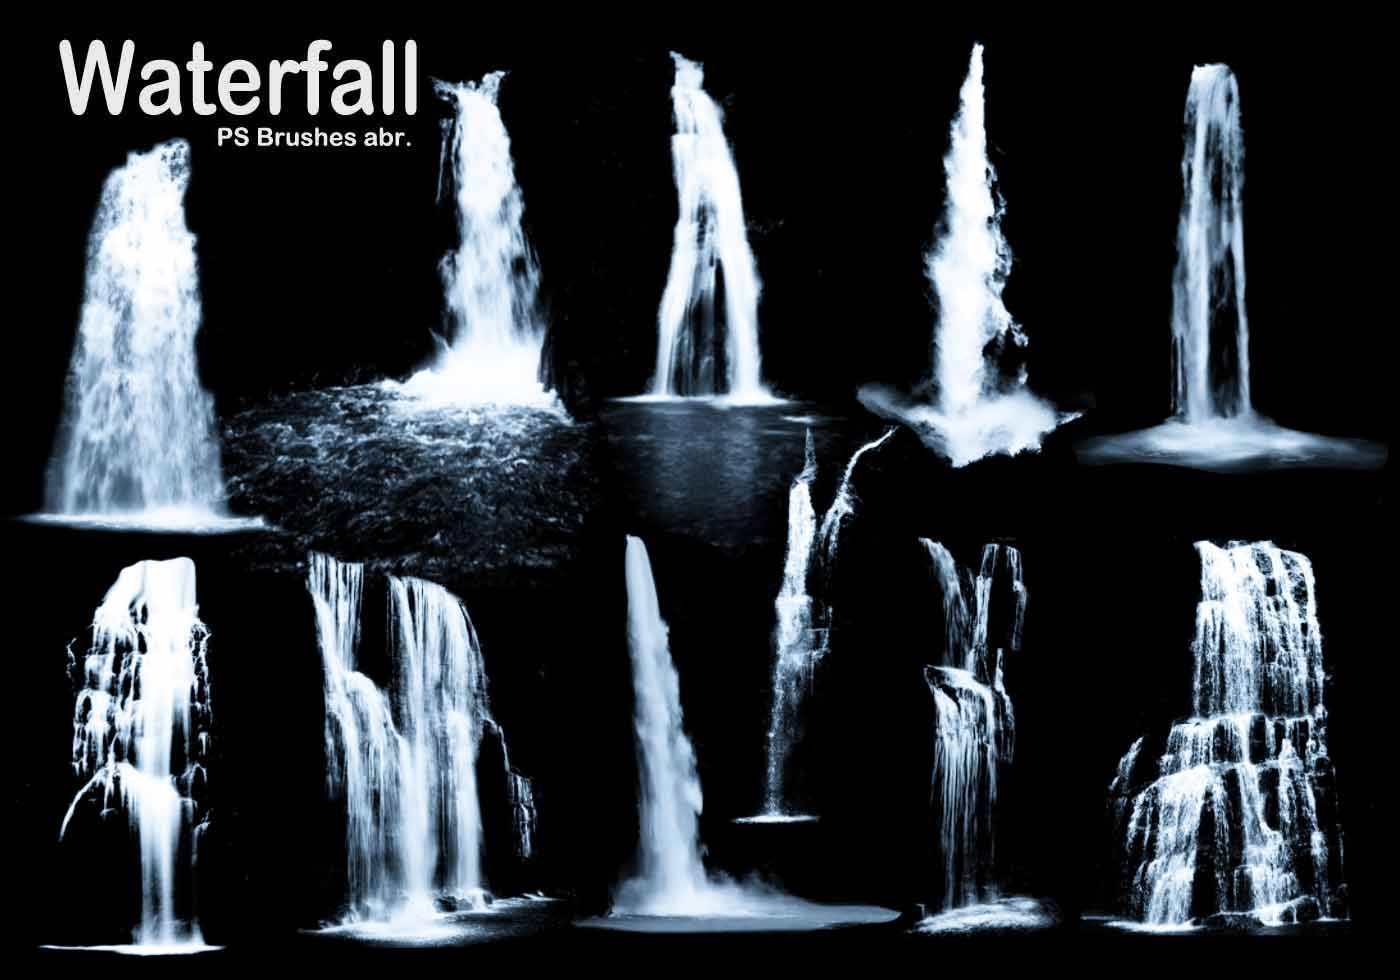 3d Fountain Wallpaper 20 Waterfall Ps Brushes Abr Vol 3 Free Photoshop